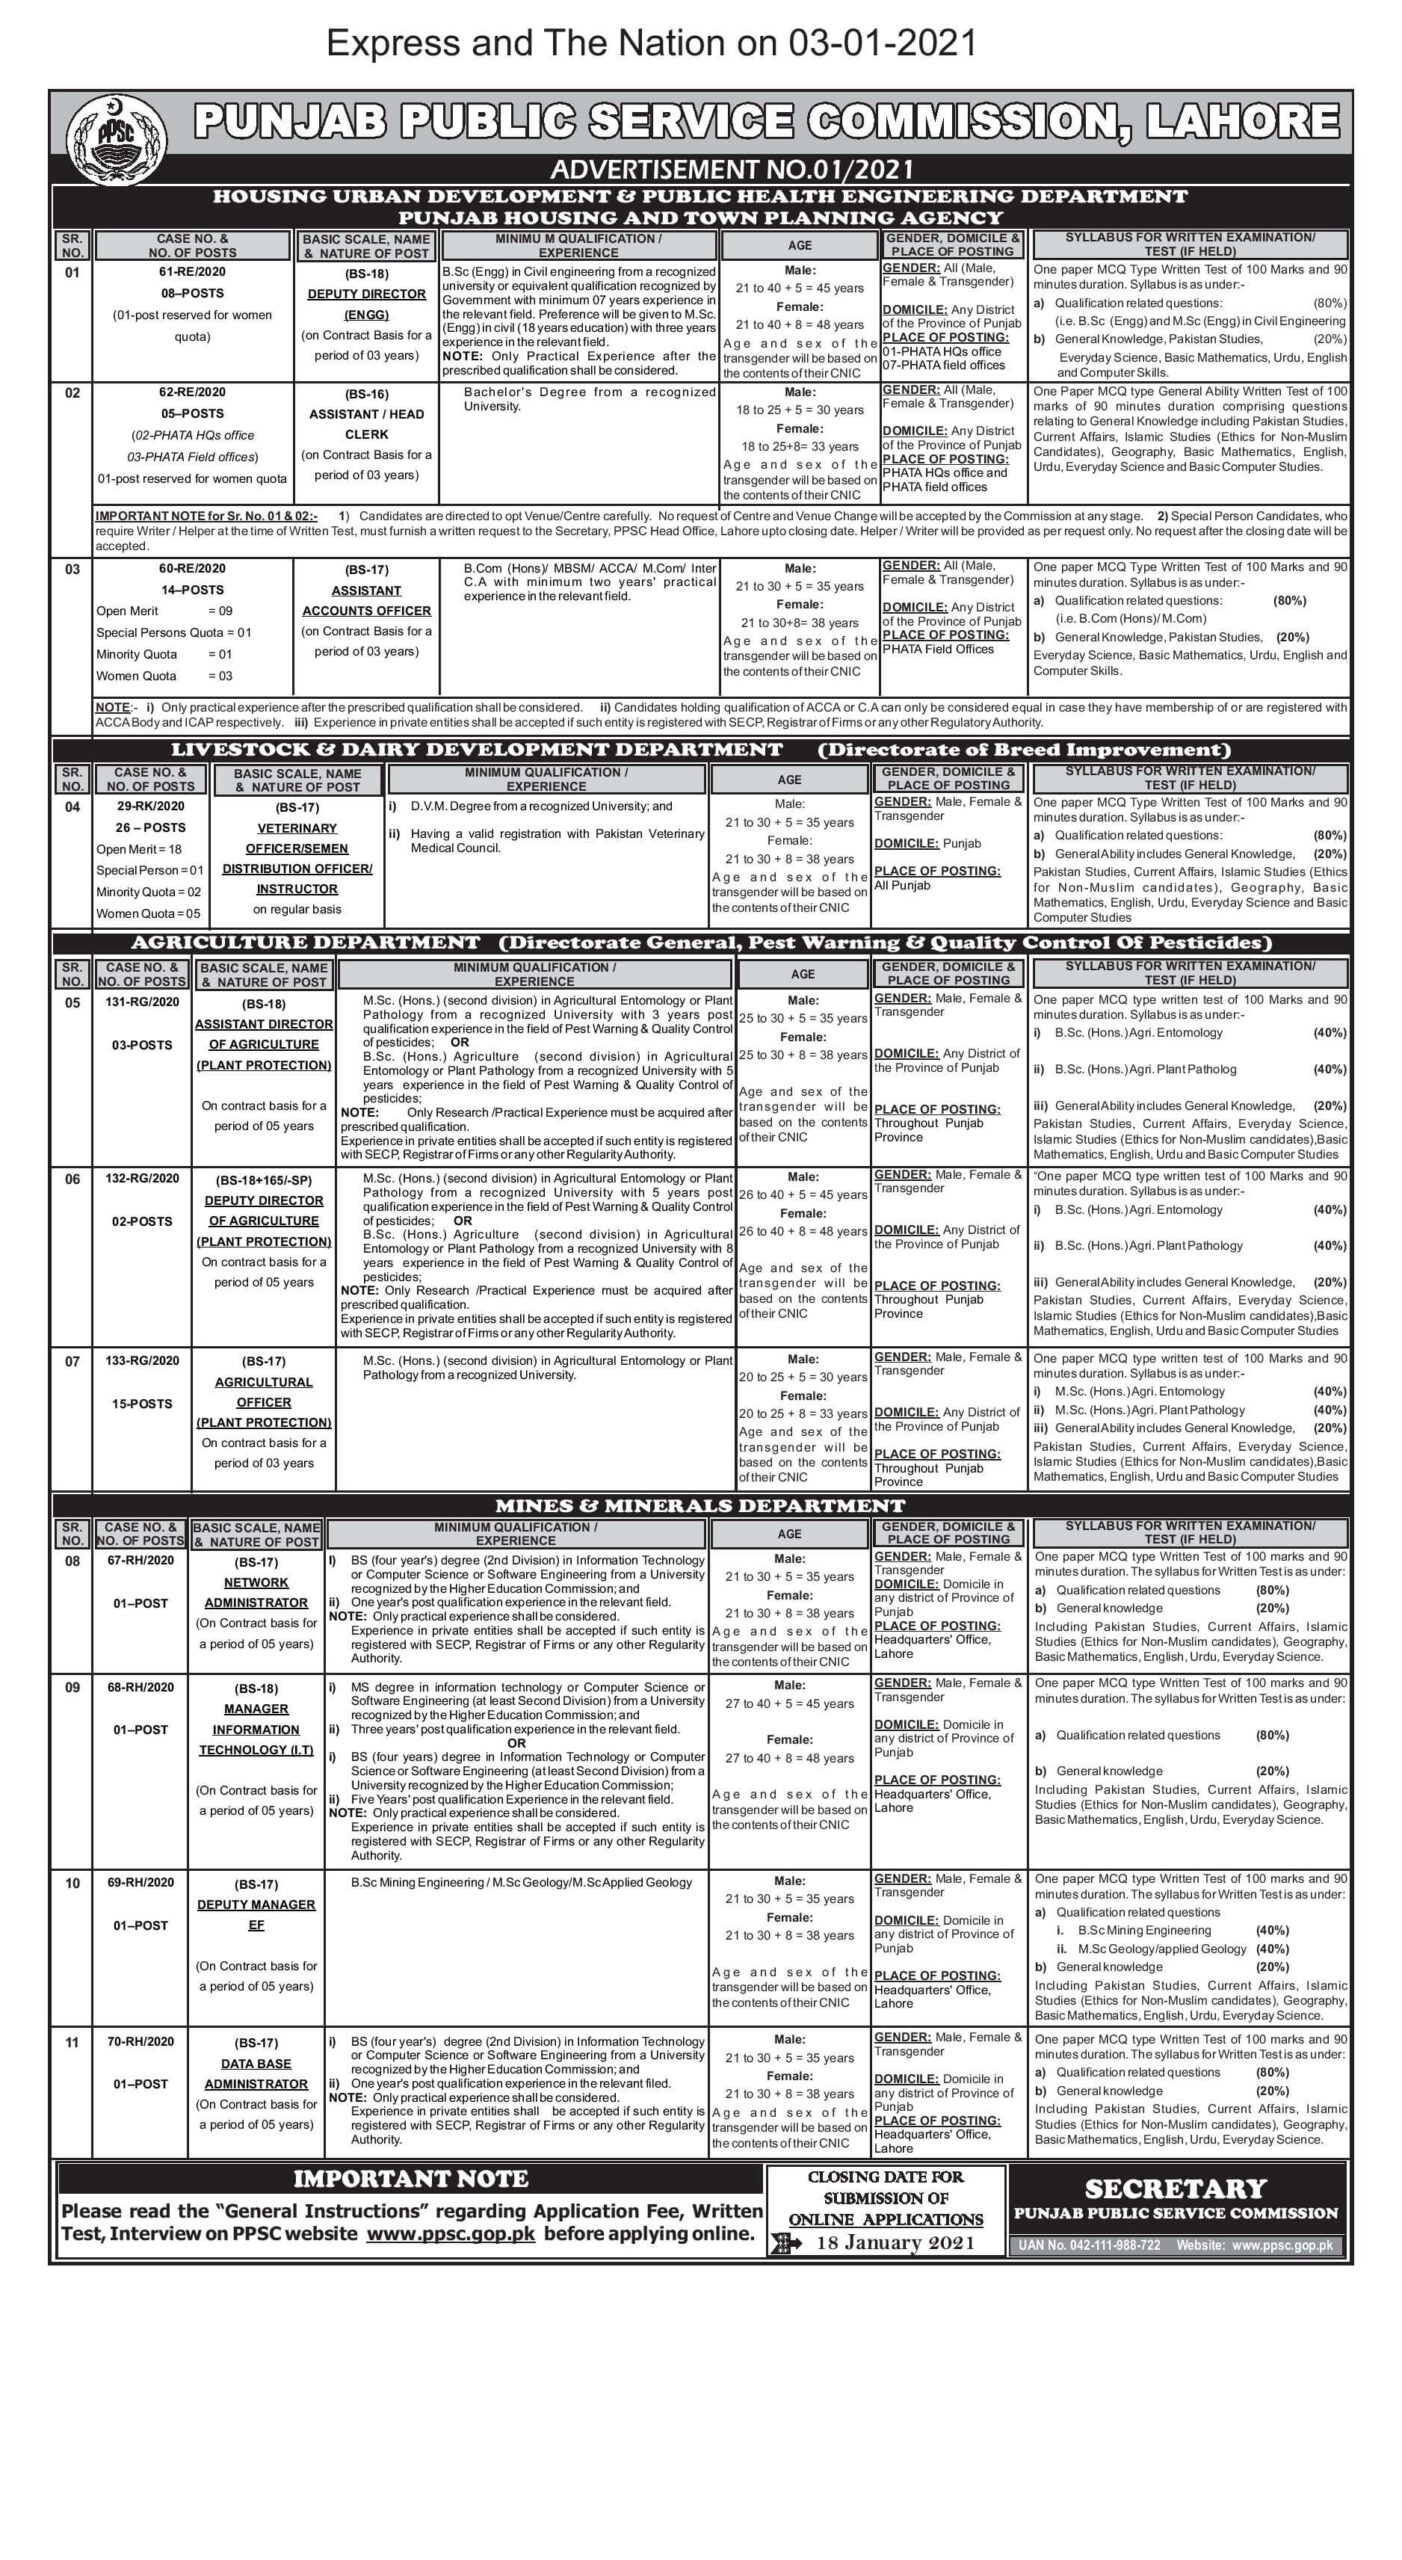 PPSC New 300 Jobs In Different Departments